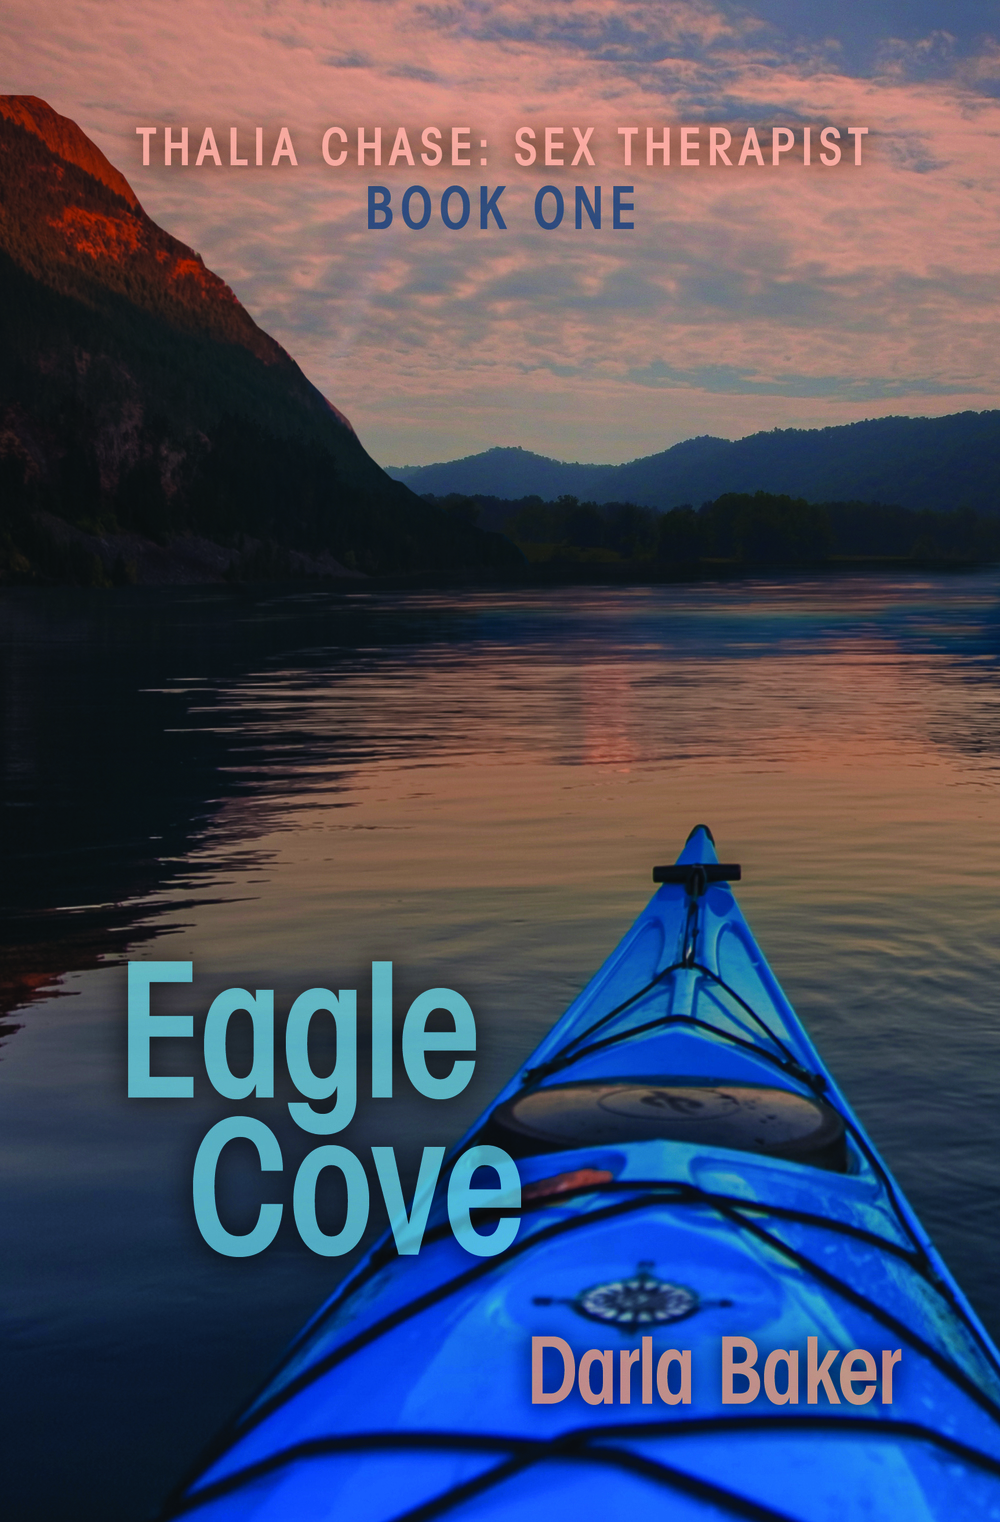 eagle-cove-ebook-cover.png